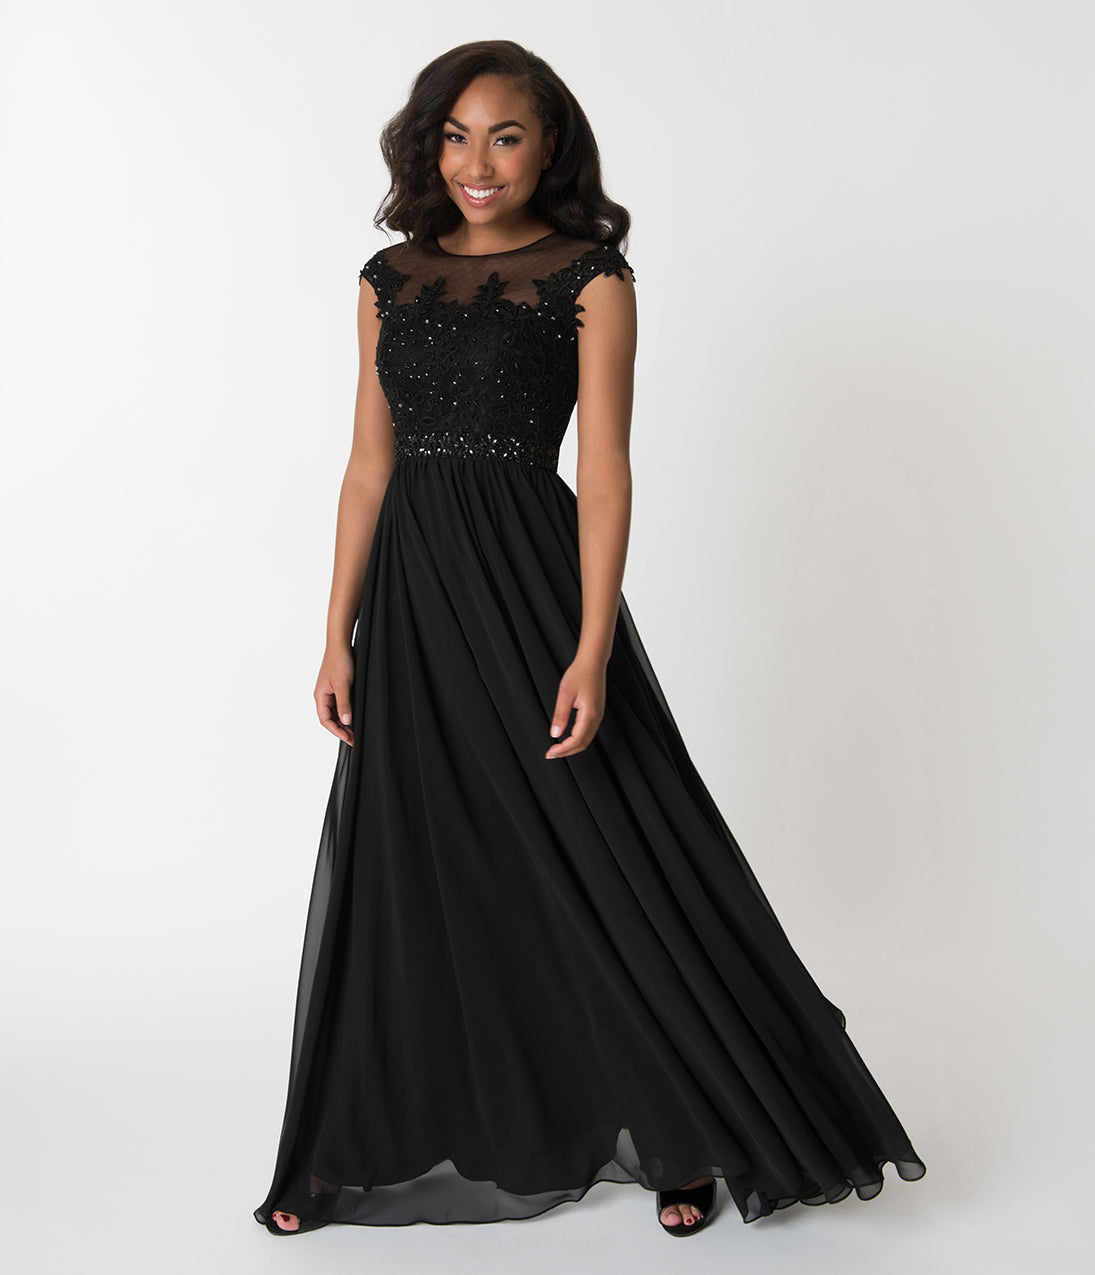 1950s Prom Dresses & Party Dresses Black Embellished Lace  Chiffon Cap Sleeve Prom Gown $142.00 AT vintagedancer.com